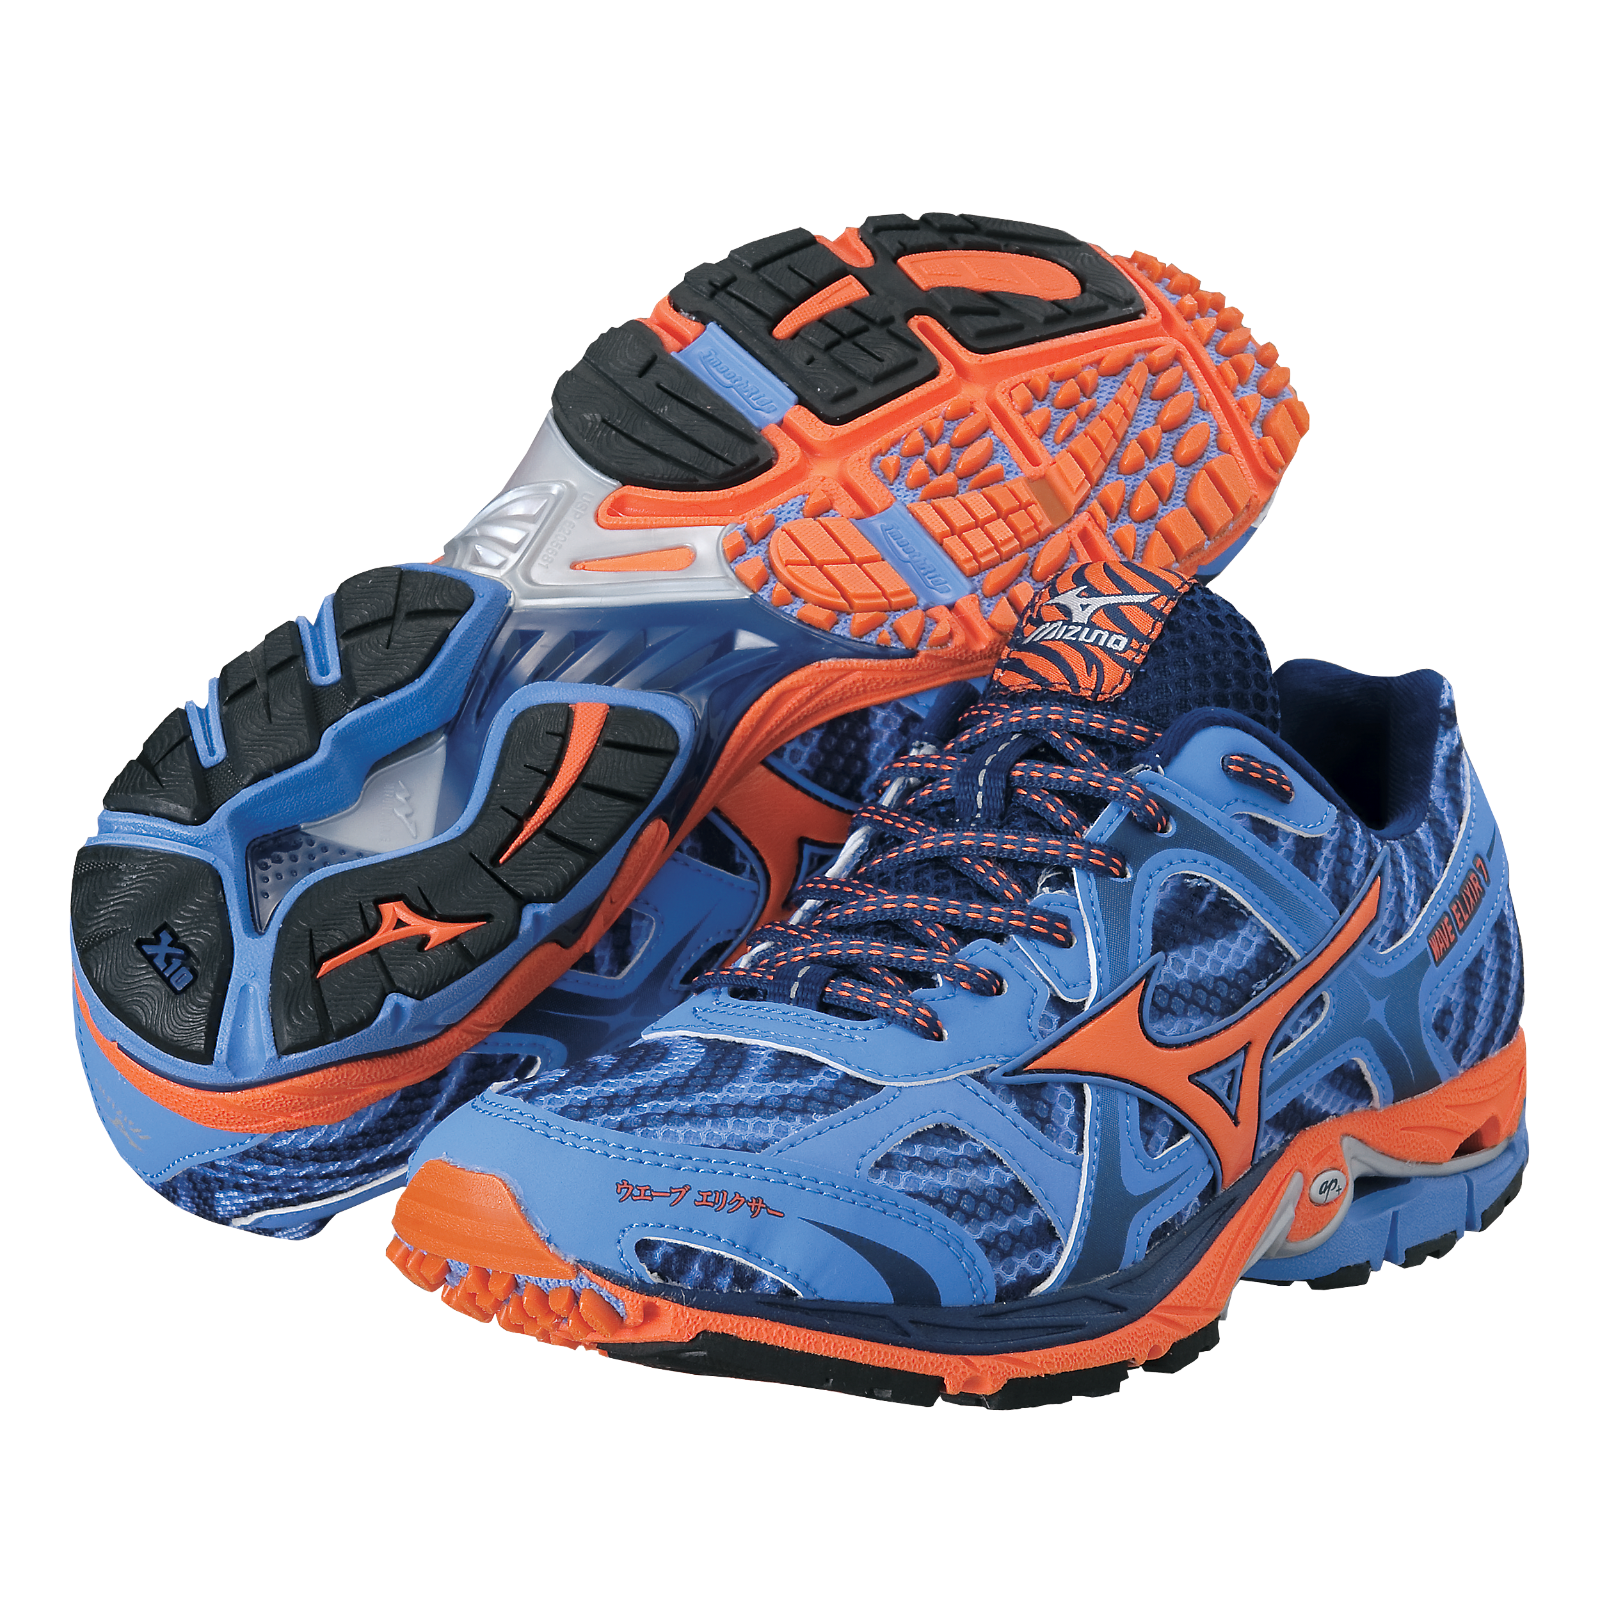 wave men sierra different shoes latest comforter women ga running athletic post mizuno of most with womens smartly large average also at heels plus size then charmful savings comfortable color neat enigma trading